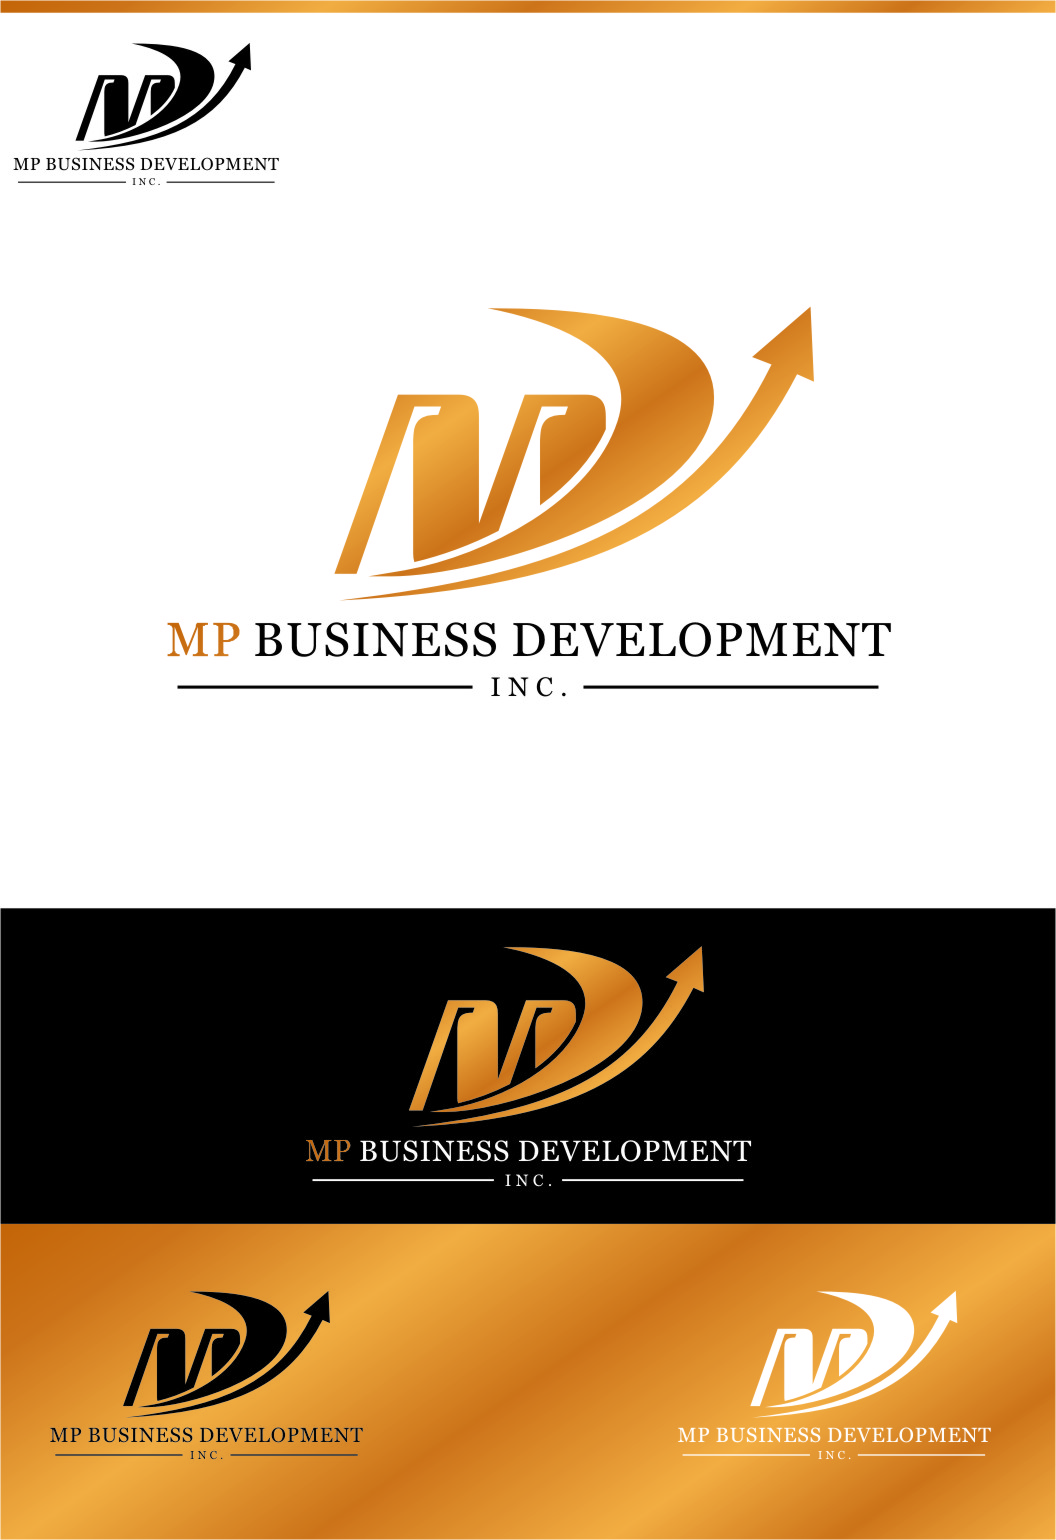 Logo Design by Ngepet_art - Entry No. 152 in the Logo Design Contest MP Business Development Inc. Logo Design.